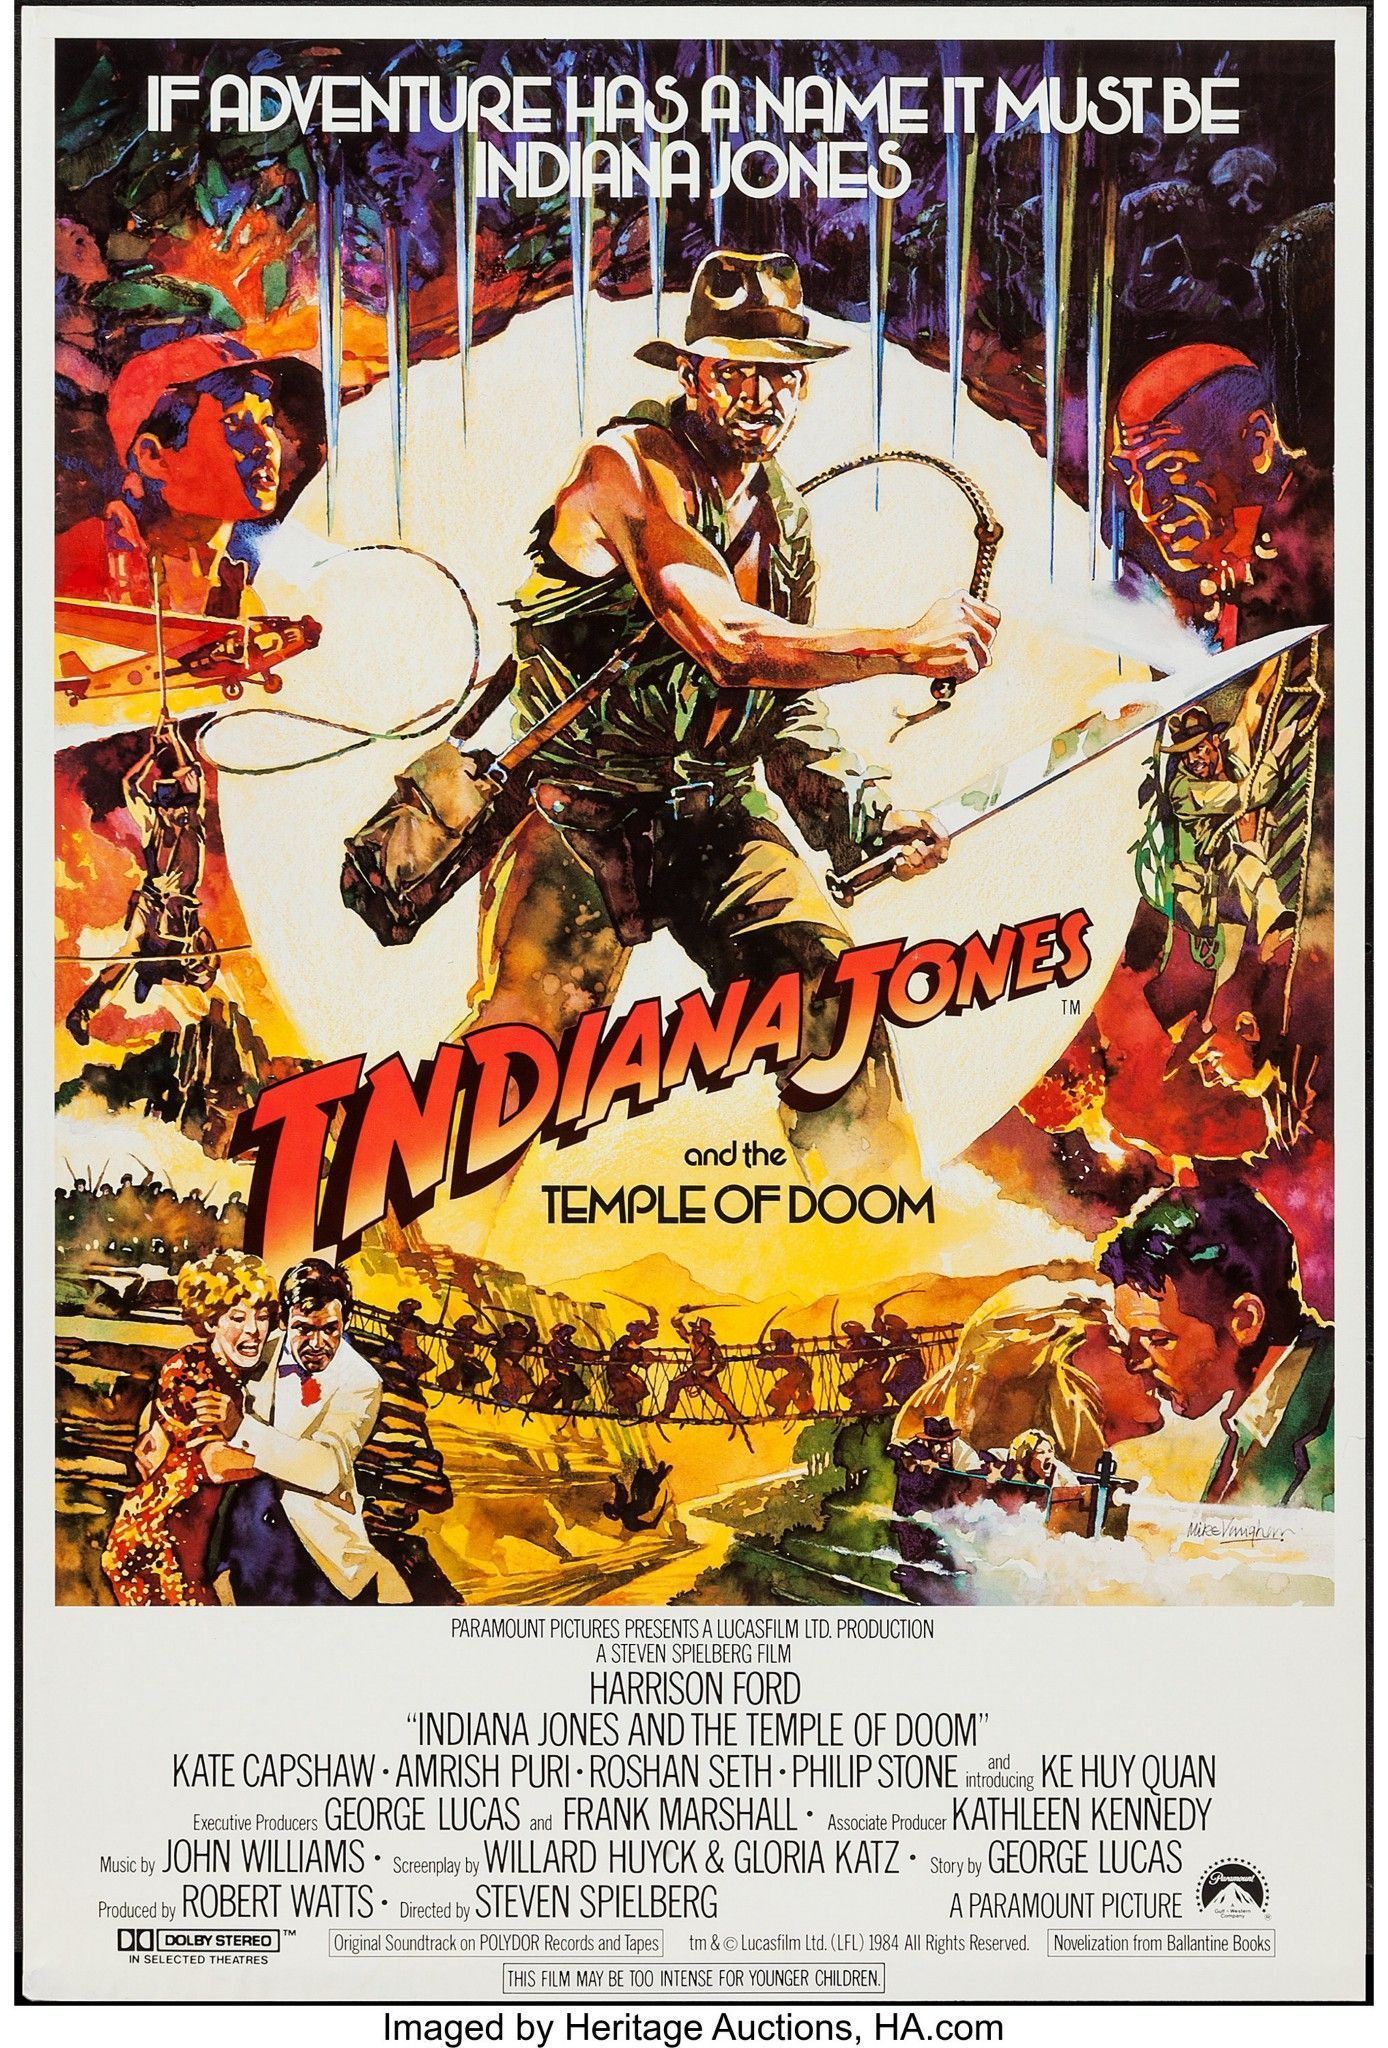 Indiana Jones And The Temple Of Doom 1984 Indiana Jones Movie Posters Indie Movie Posters